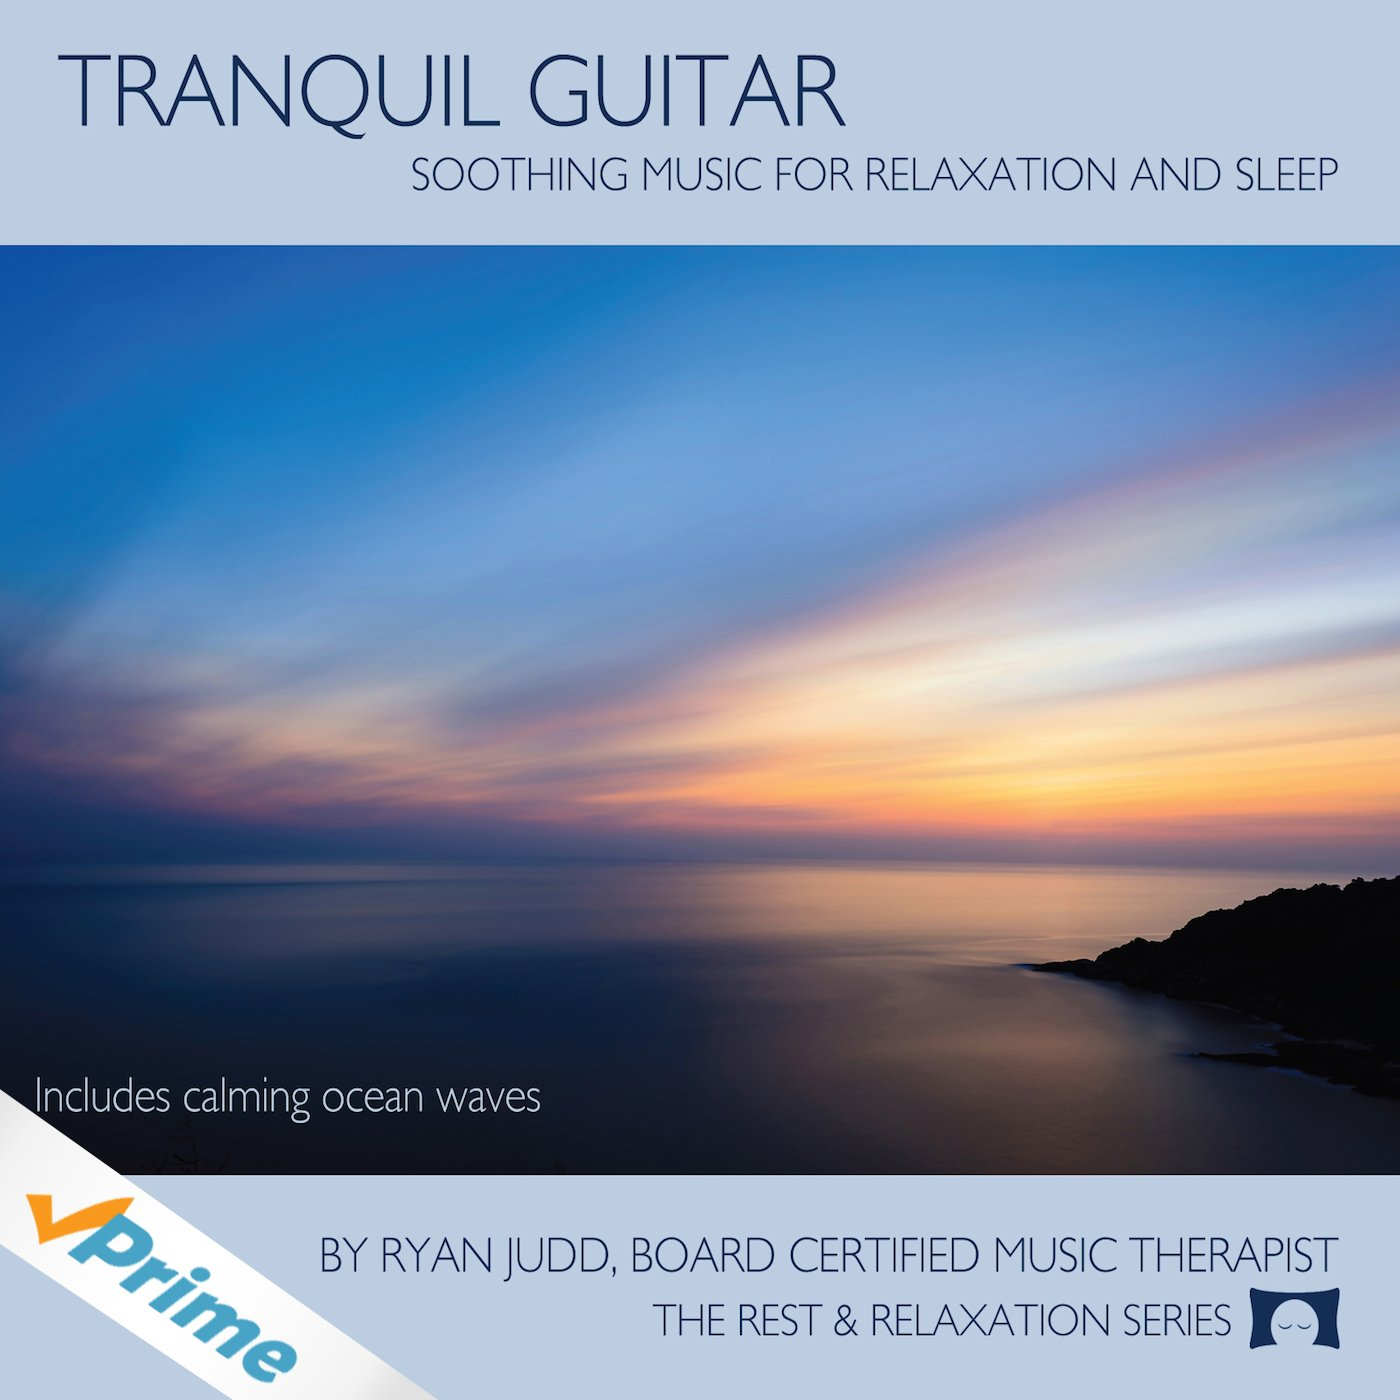 Tranquil Guitar - Soothing Music